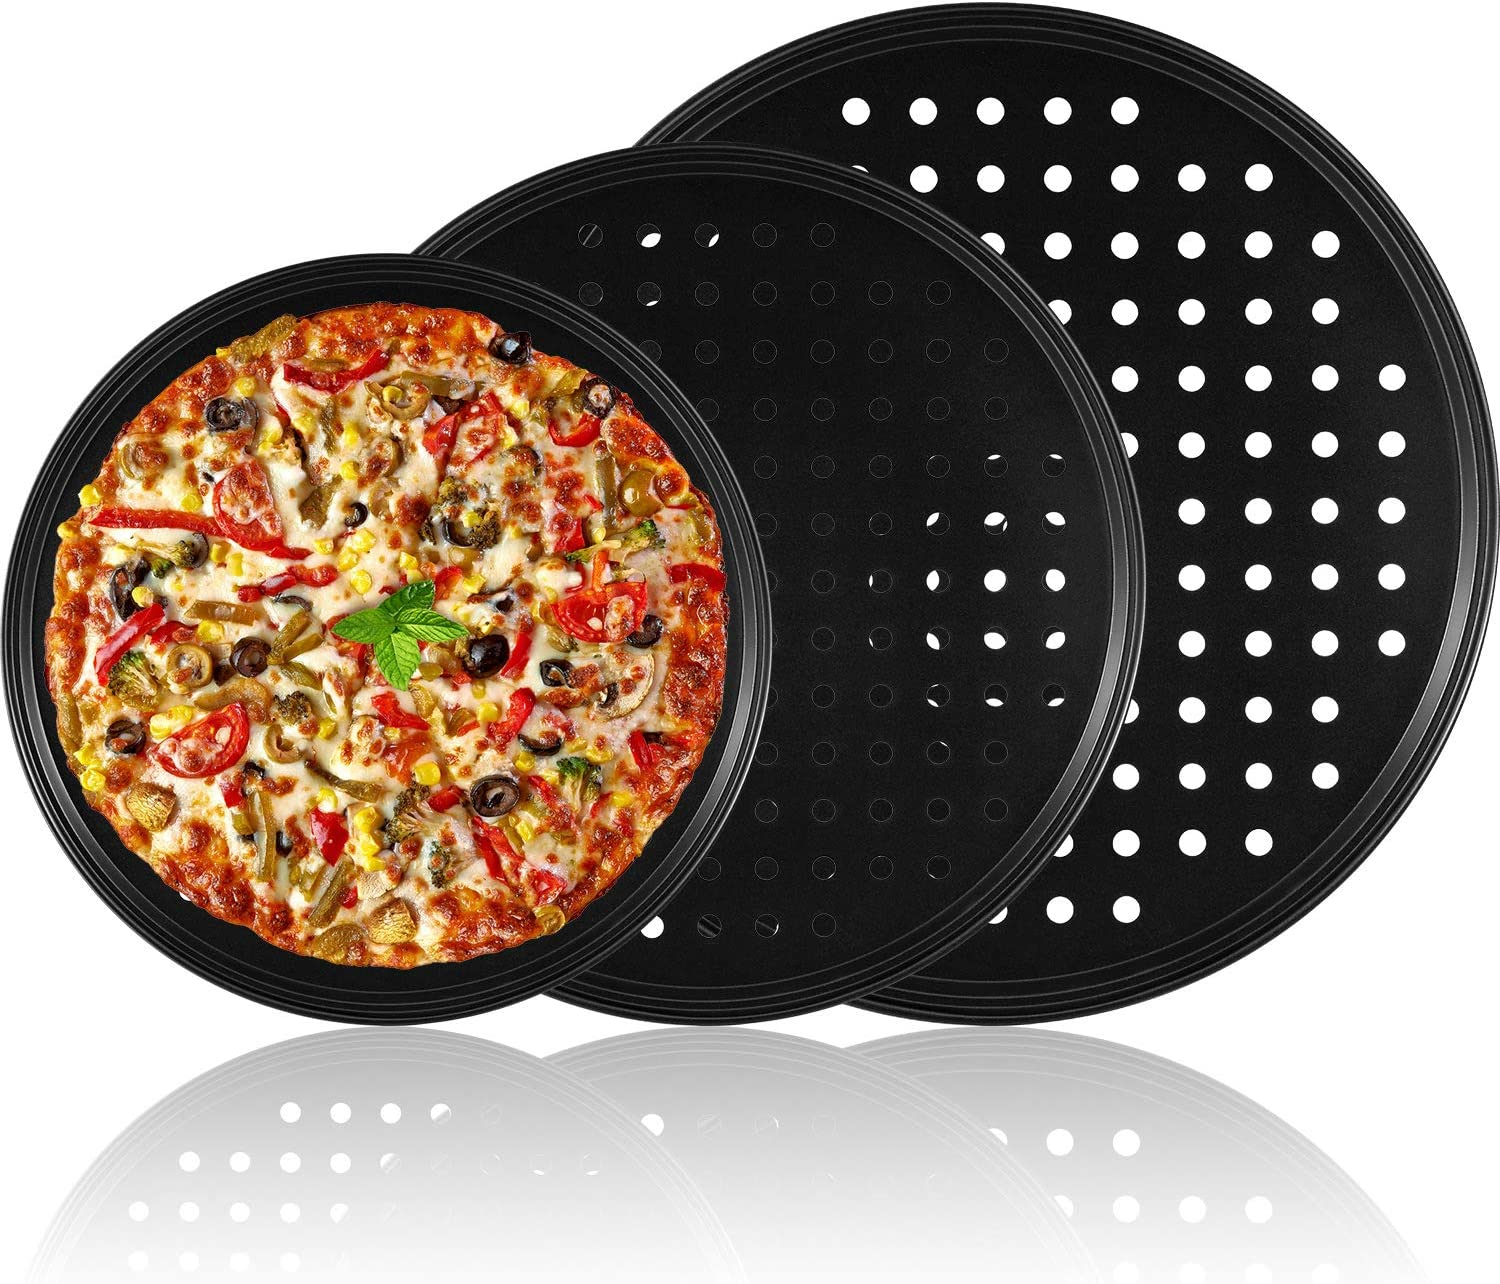 3 Pieces Pizza Crisper Pan Carbon Steel Pizza Pan Non-Stick Round Pizza Tray with Holes for Home Restaurant Hotel Use, 9 Inch /11 Inch/12.5 Inch (Black)